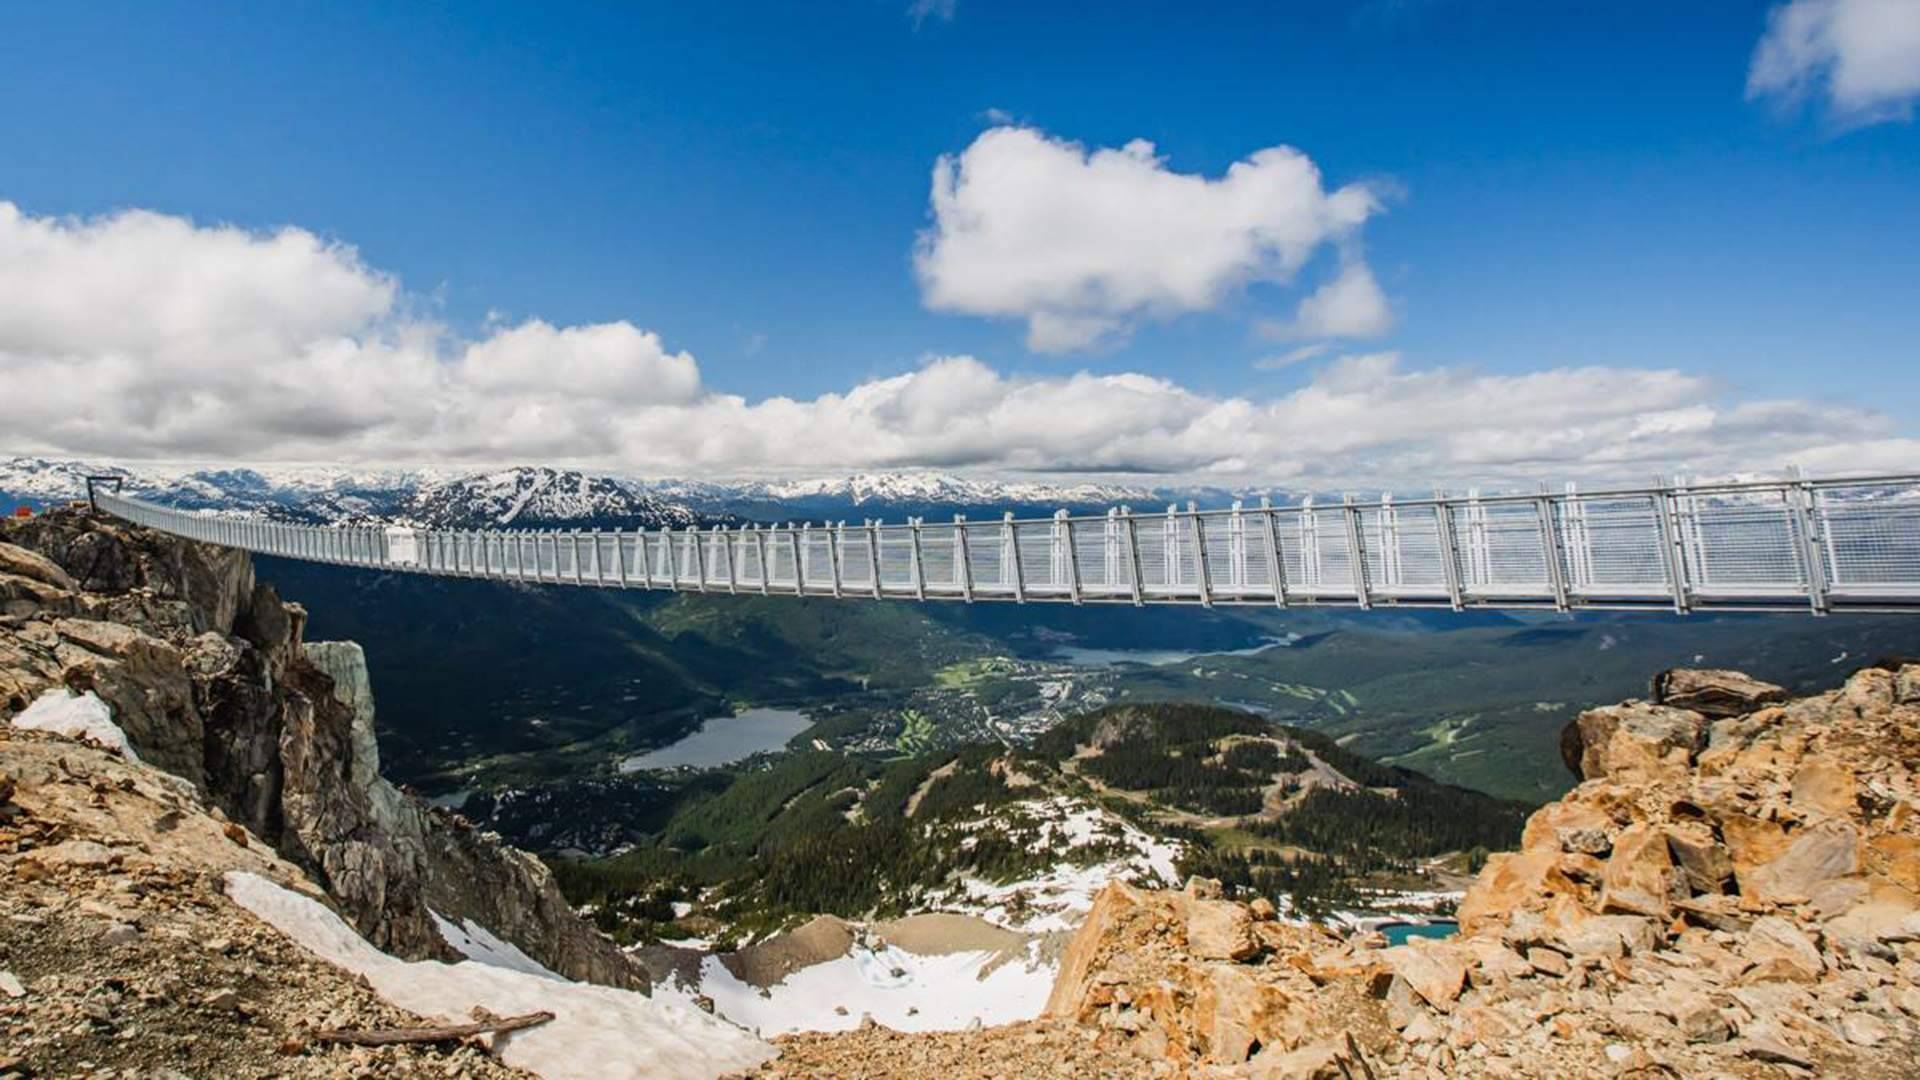 This Sky-High Suspension Bridge Lets You Walk Over Canada's Famed Whistler Bowl